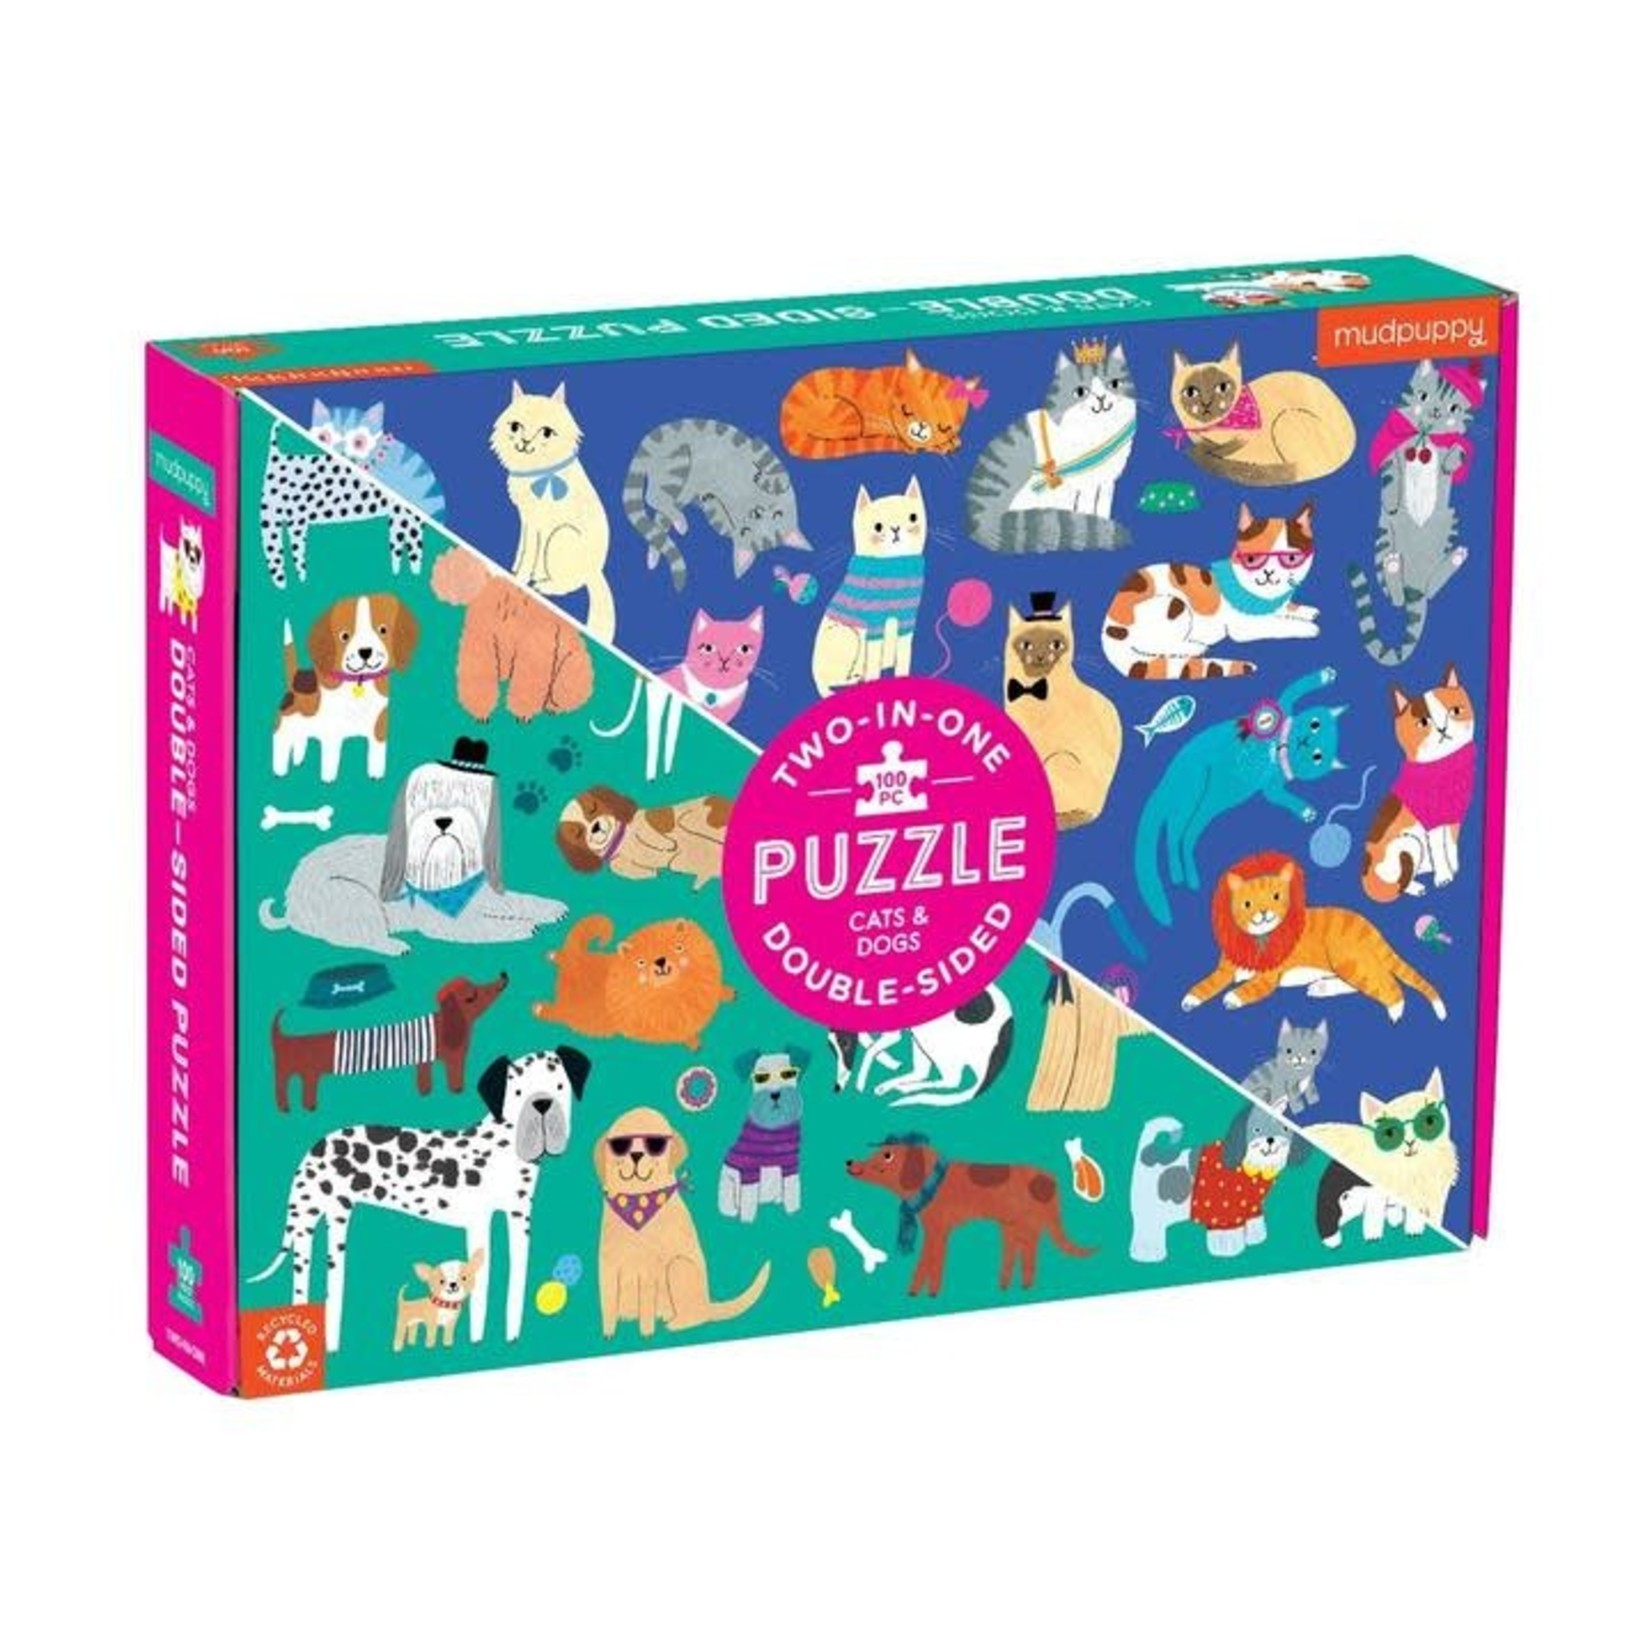 Mudpuppy Mudpuppy: 100 Piece Puzzle - Double-sided: Cats & Dogs